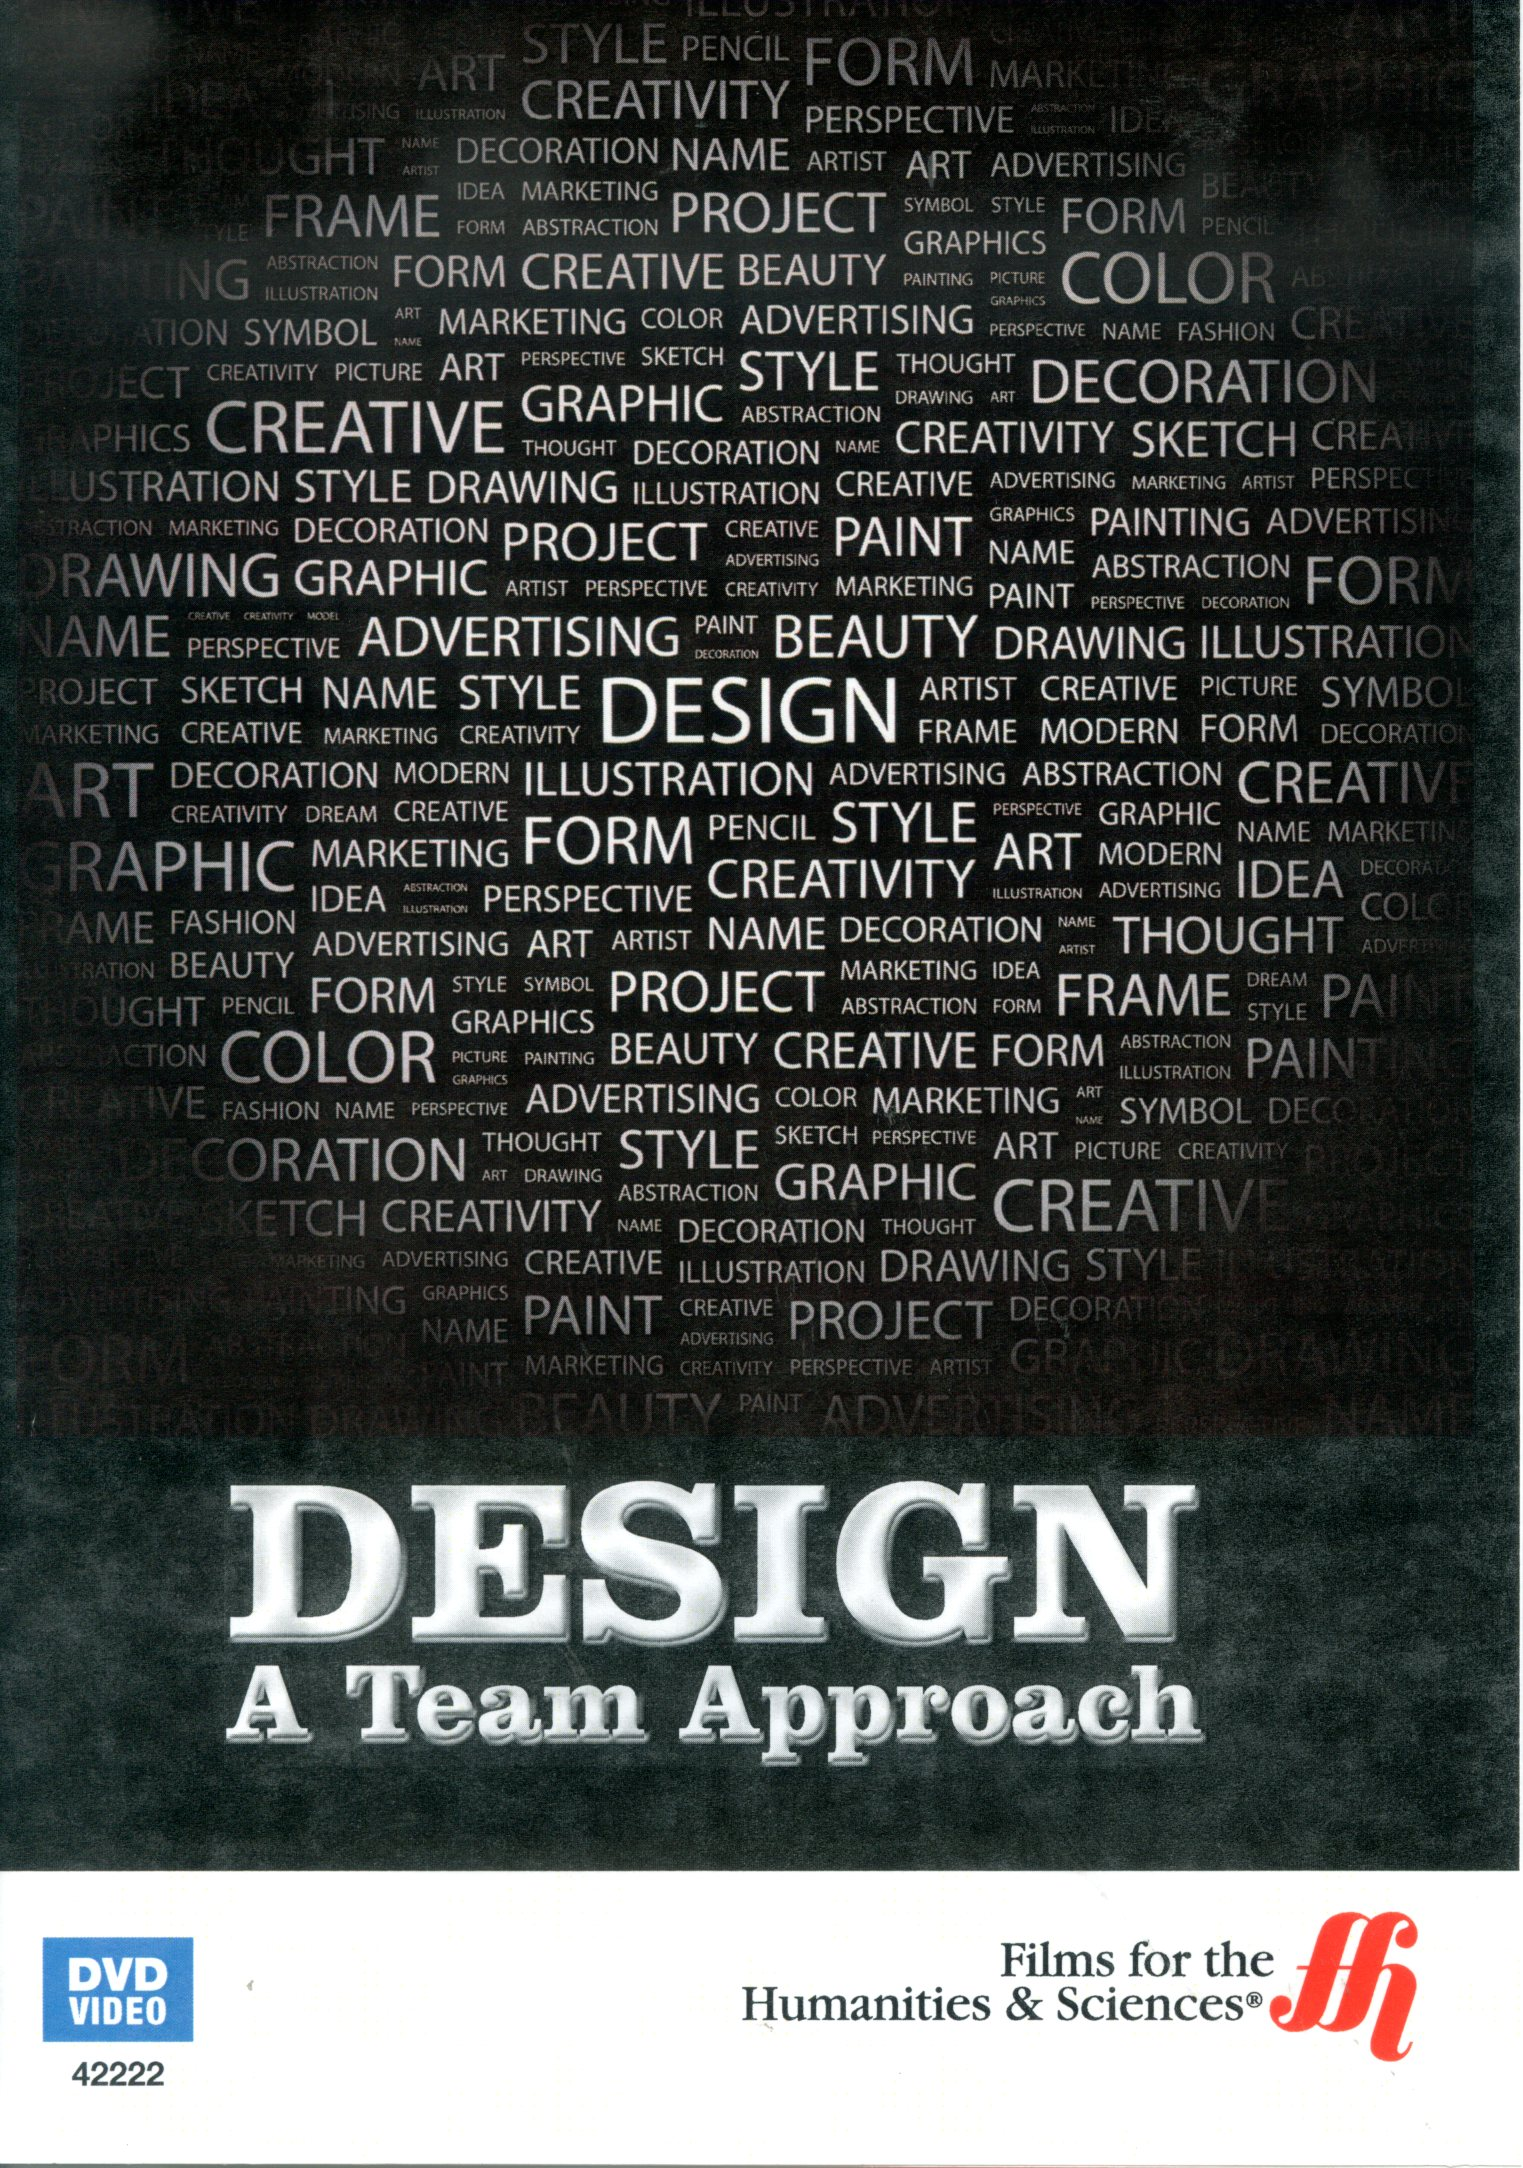 Design a team approach.